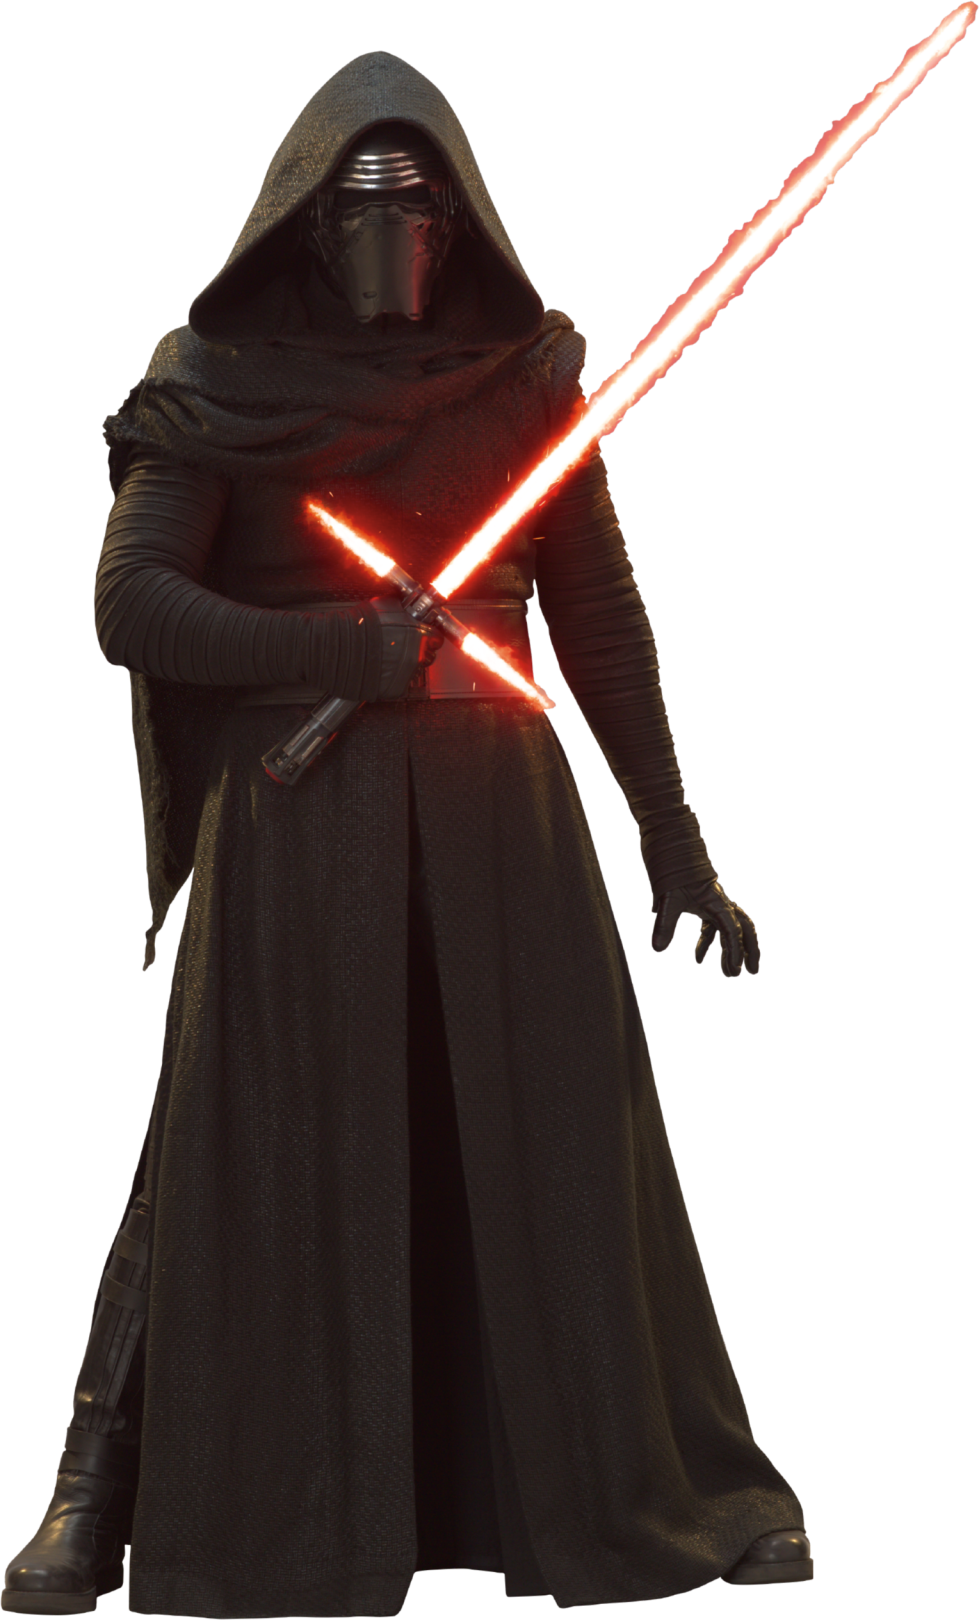 %name Where to get the characters of Star Wars: #TheForceAwakens in HQ?